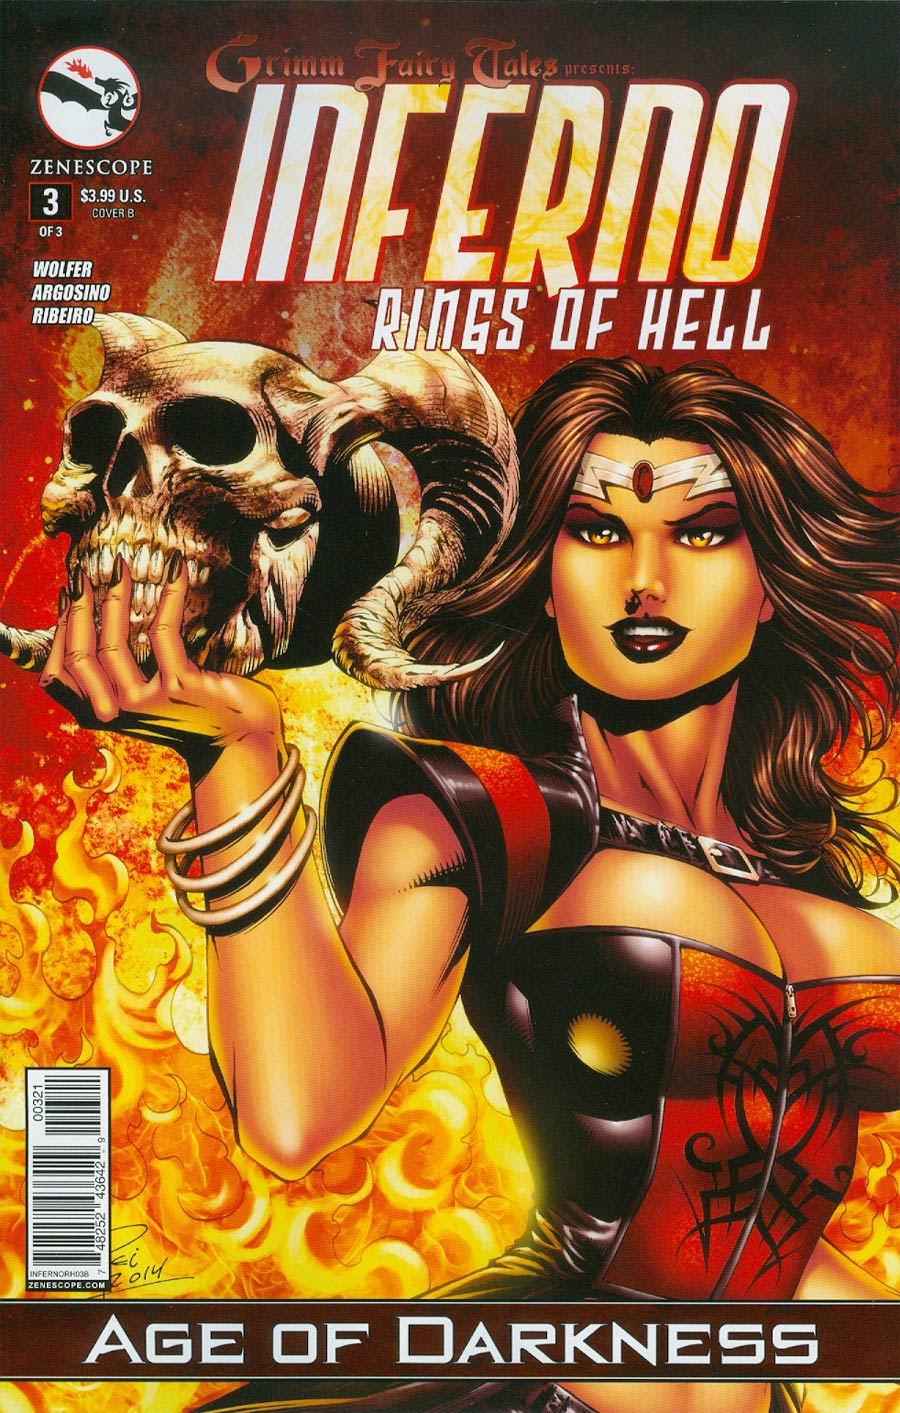 Grimm Fairy Tales Presents Inferno Rings Of Hell #3 Cover B Renato Rei (Age Of Darkness Tie-In)